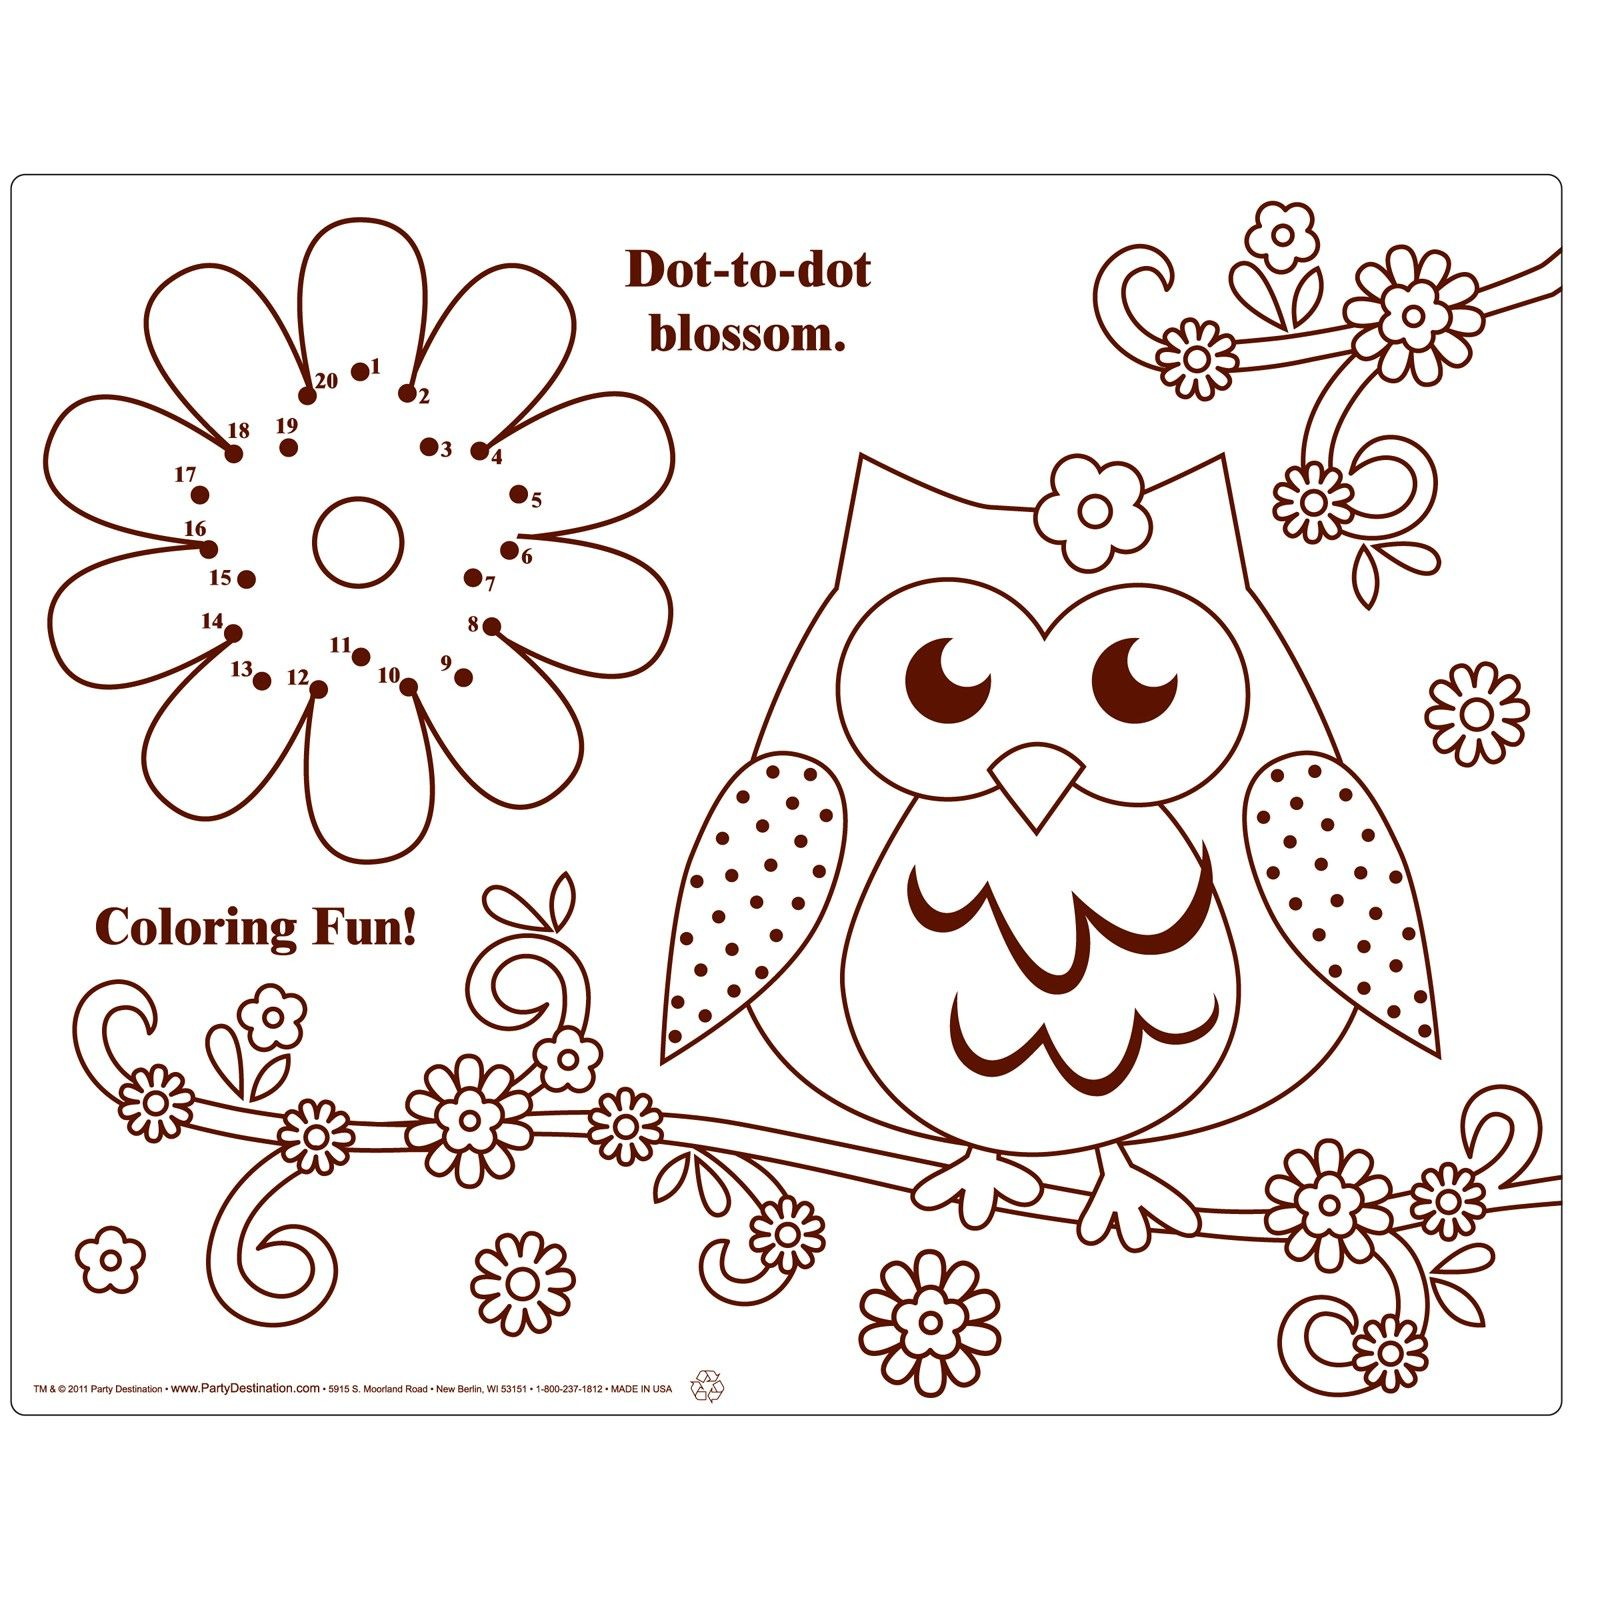 Use Image For Coloring Station